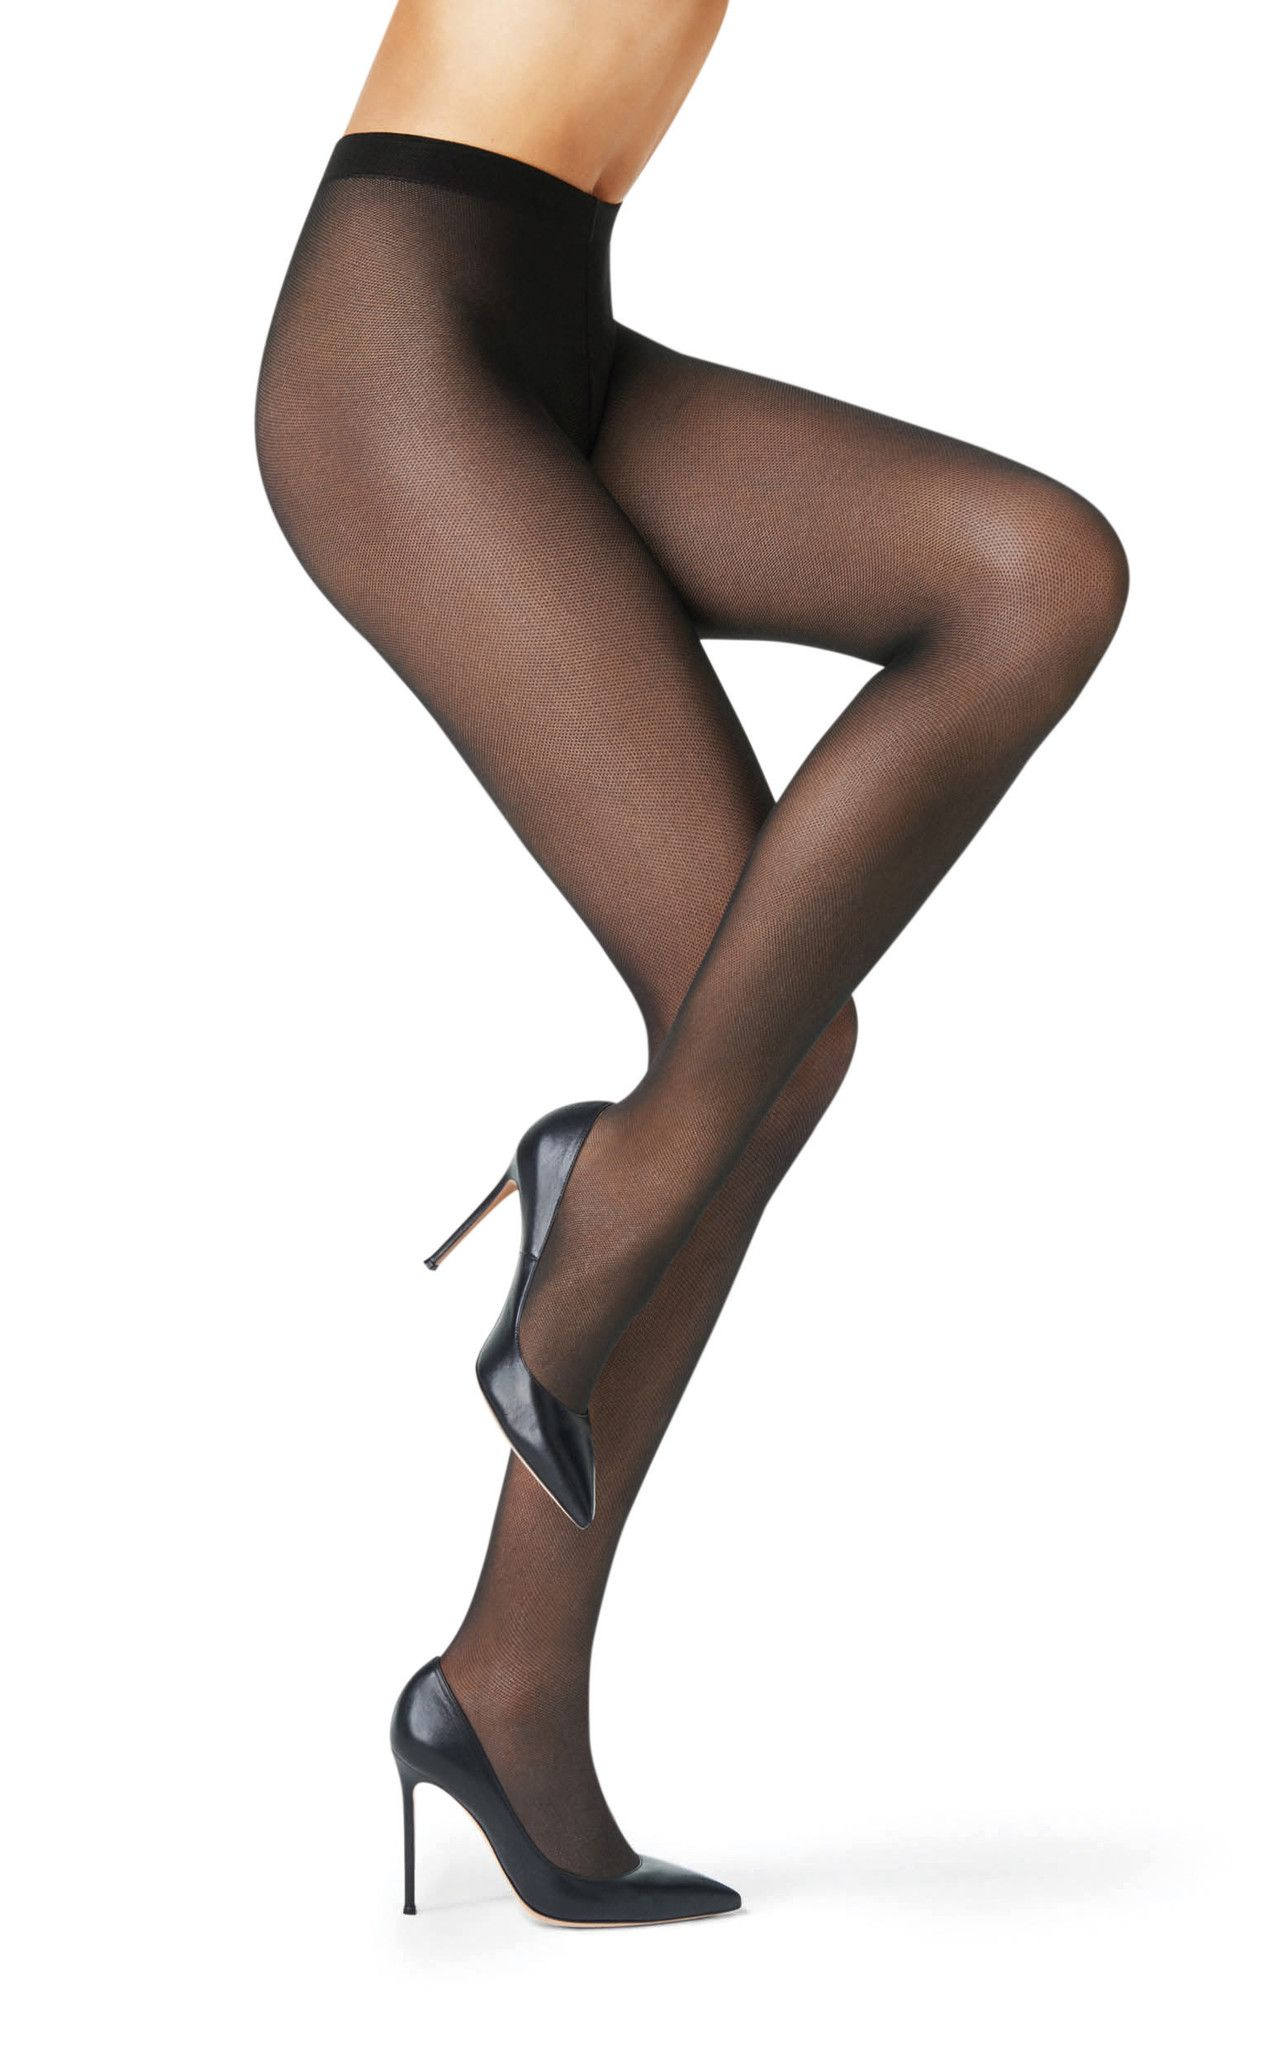 Pantyhose and stokings photos